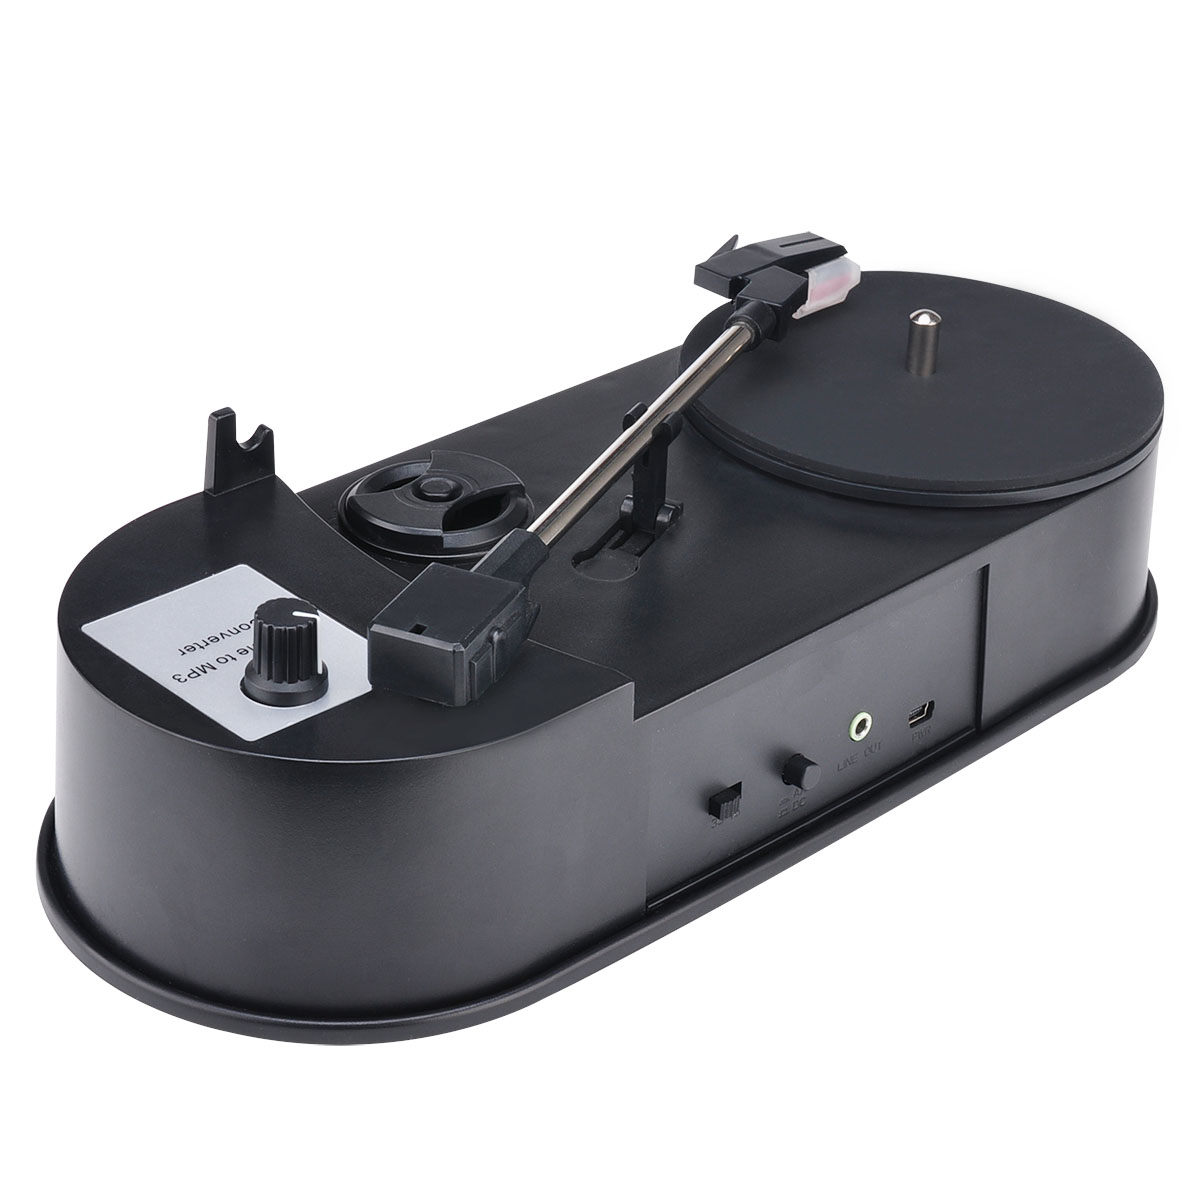 New OEM phono USB Turntable Converter Vinyl to MP3 both 33 and 45 rpm ezcap610P